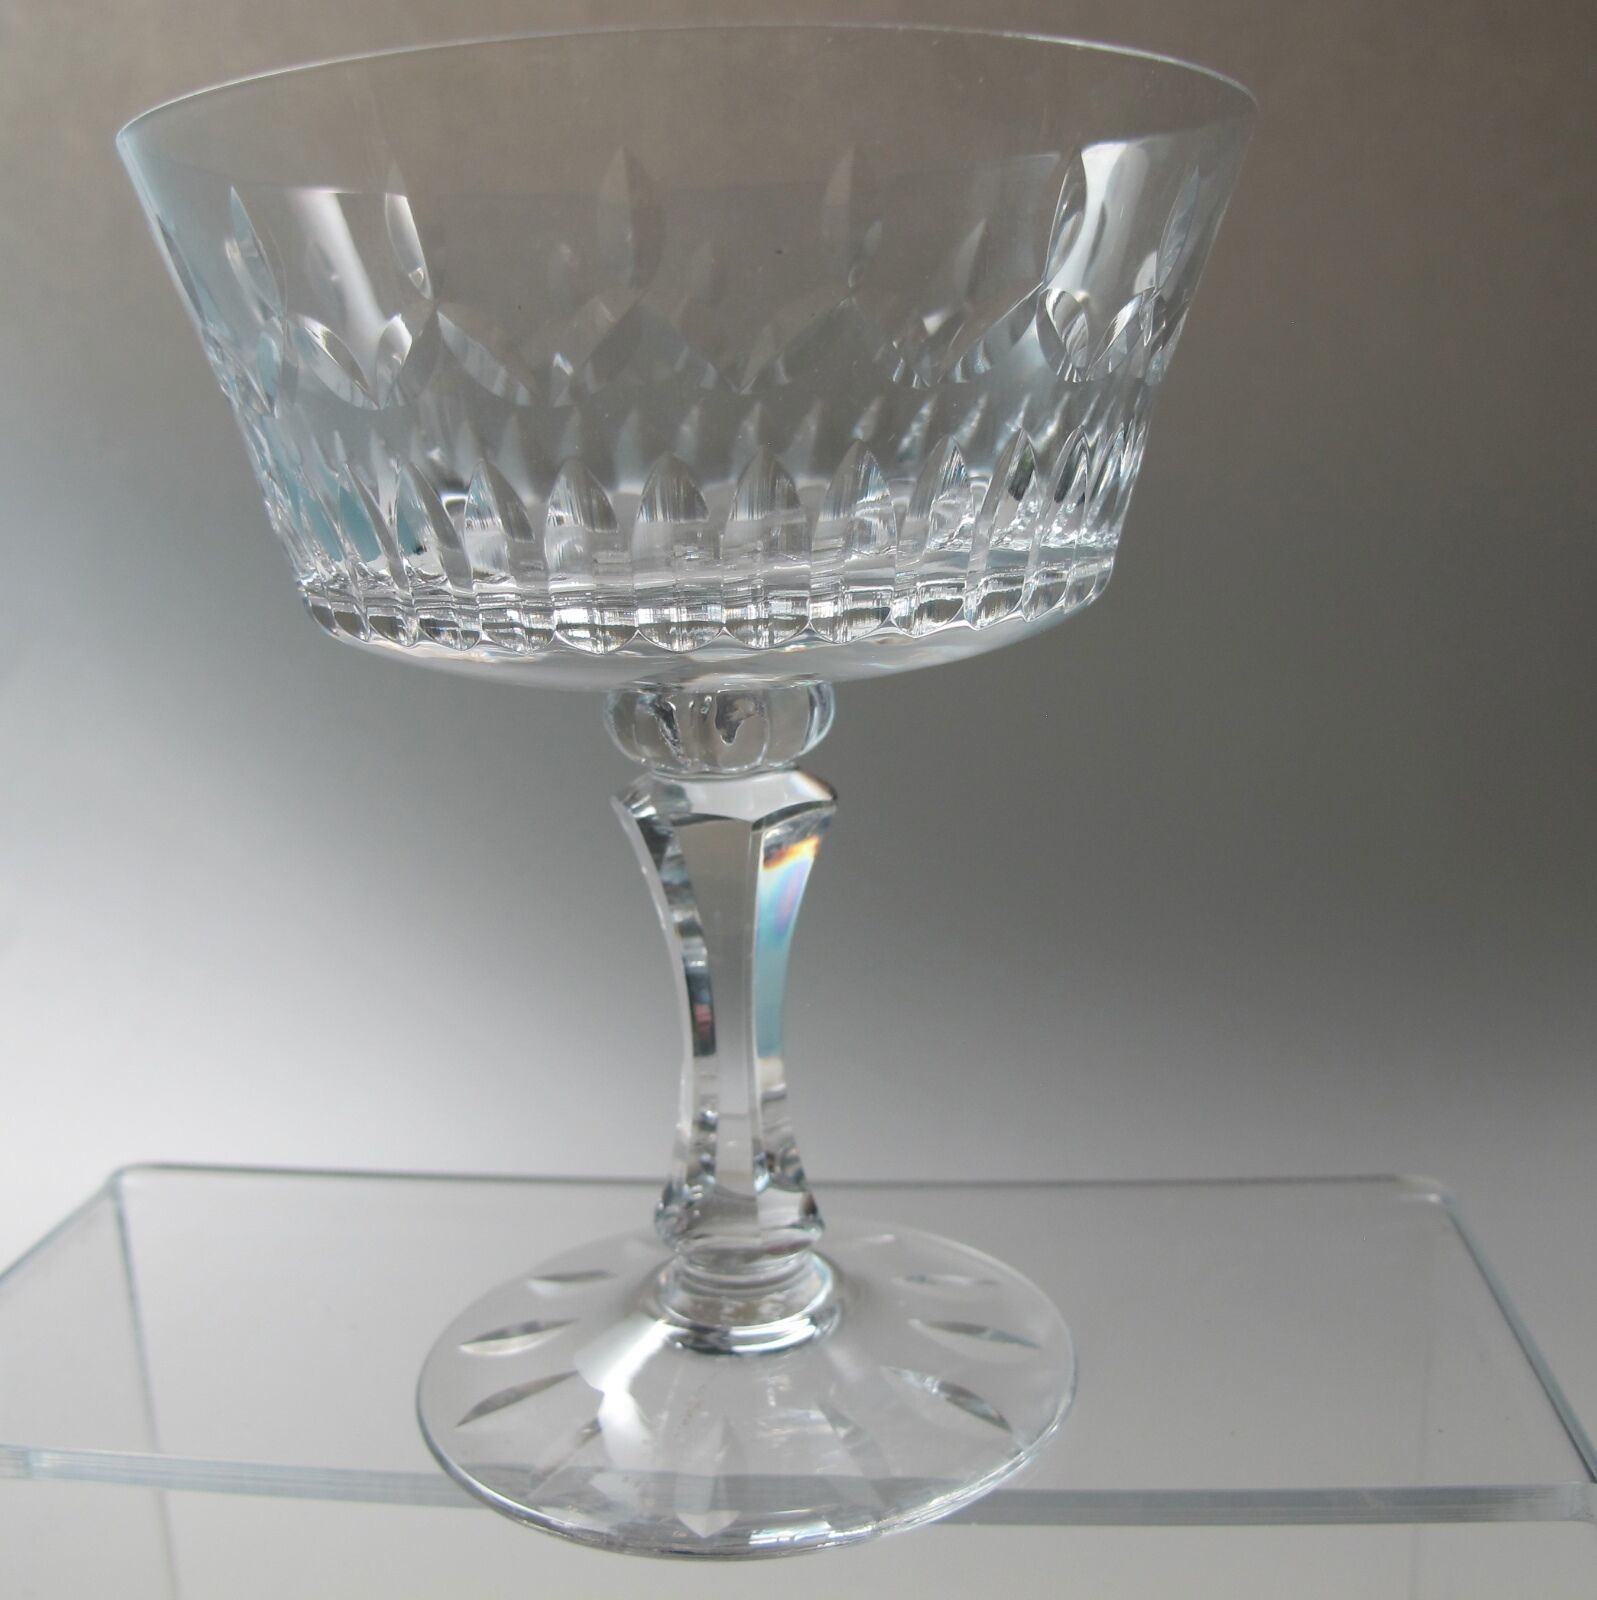 Primary image for  Lenox Cut glass Flourish Crystal dessert Made in USA Mt Pleasant PA mouth blown